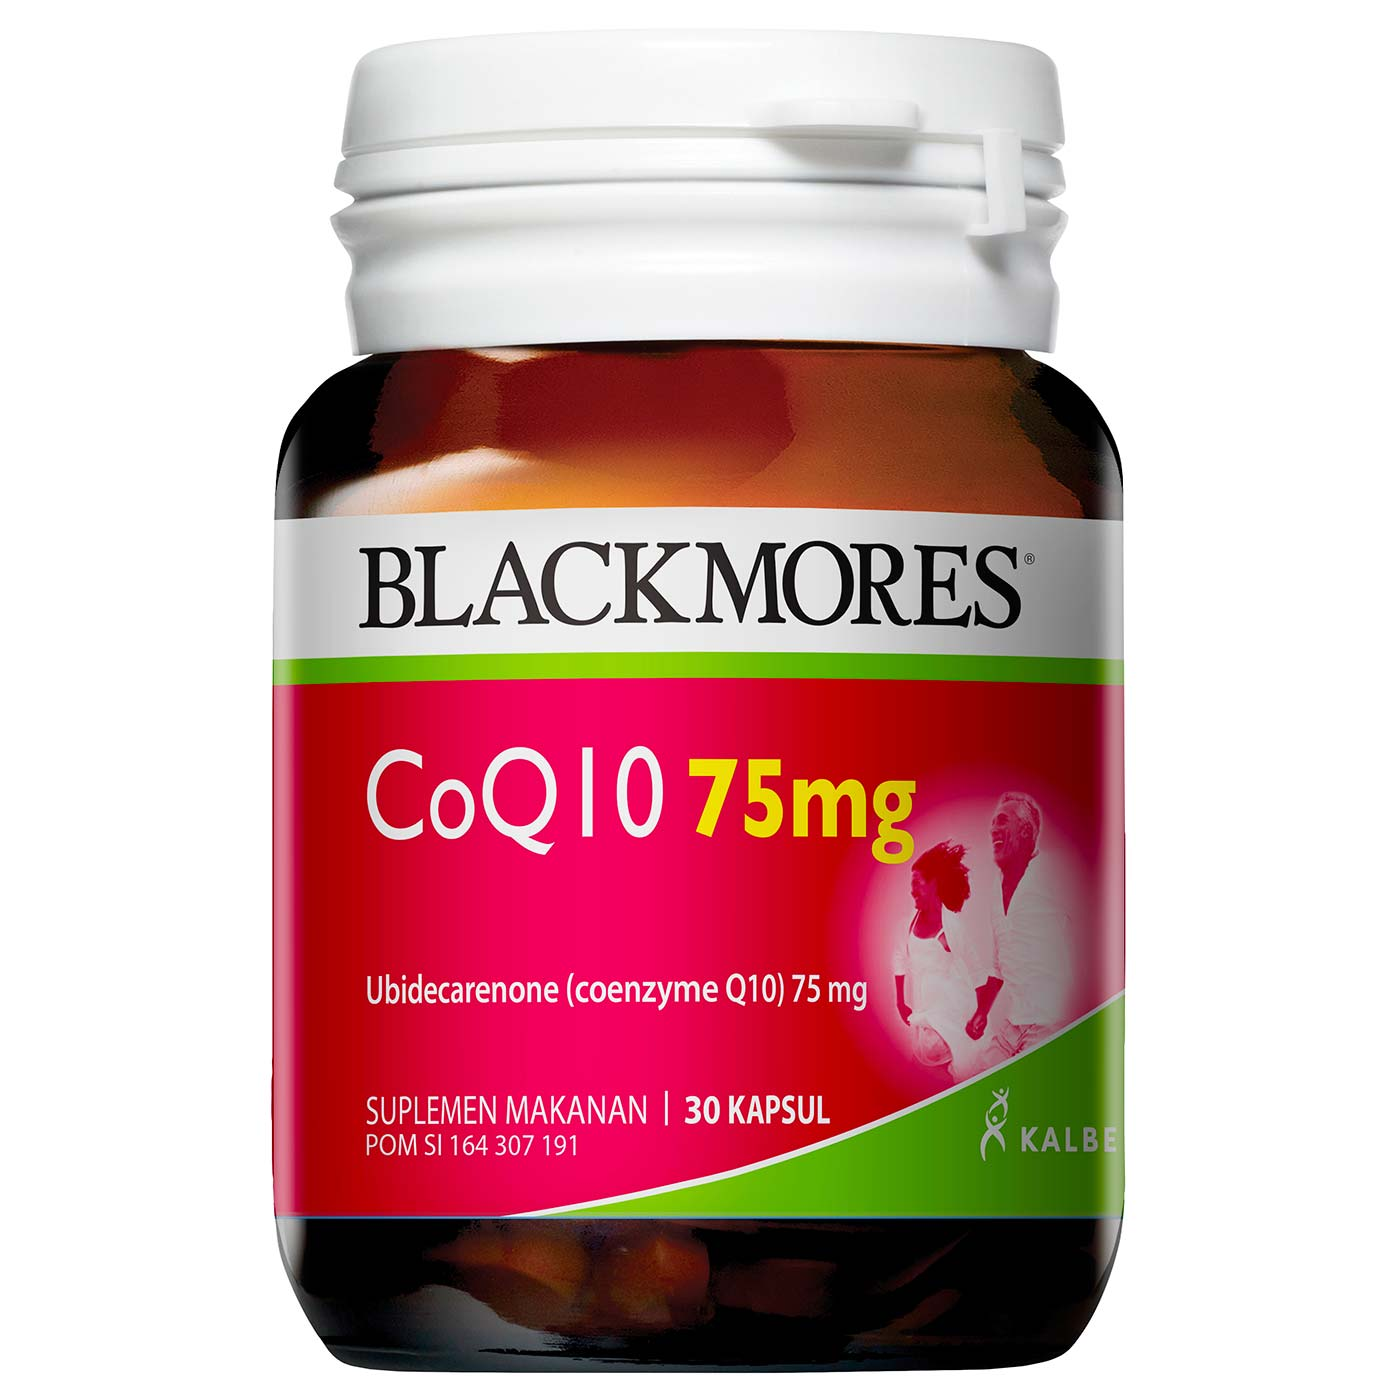 Blackmores Coq10 75mg 30 Capsule 1